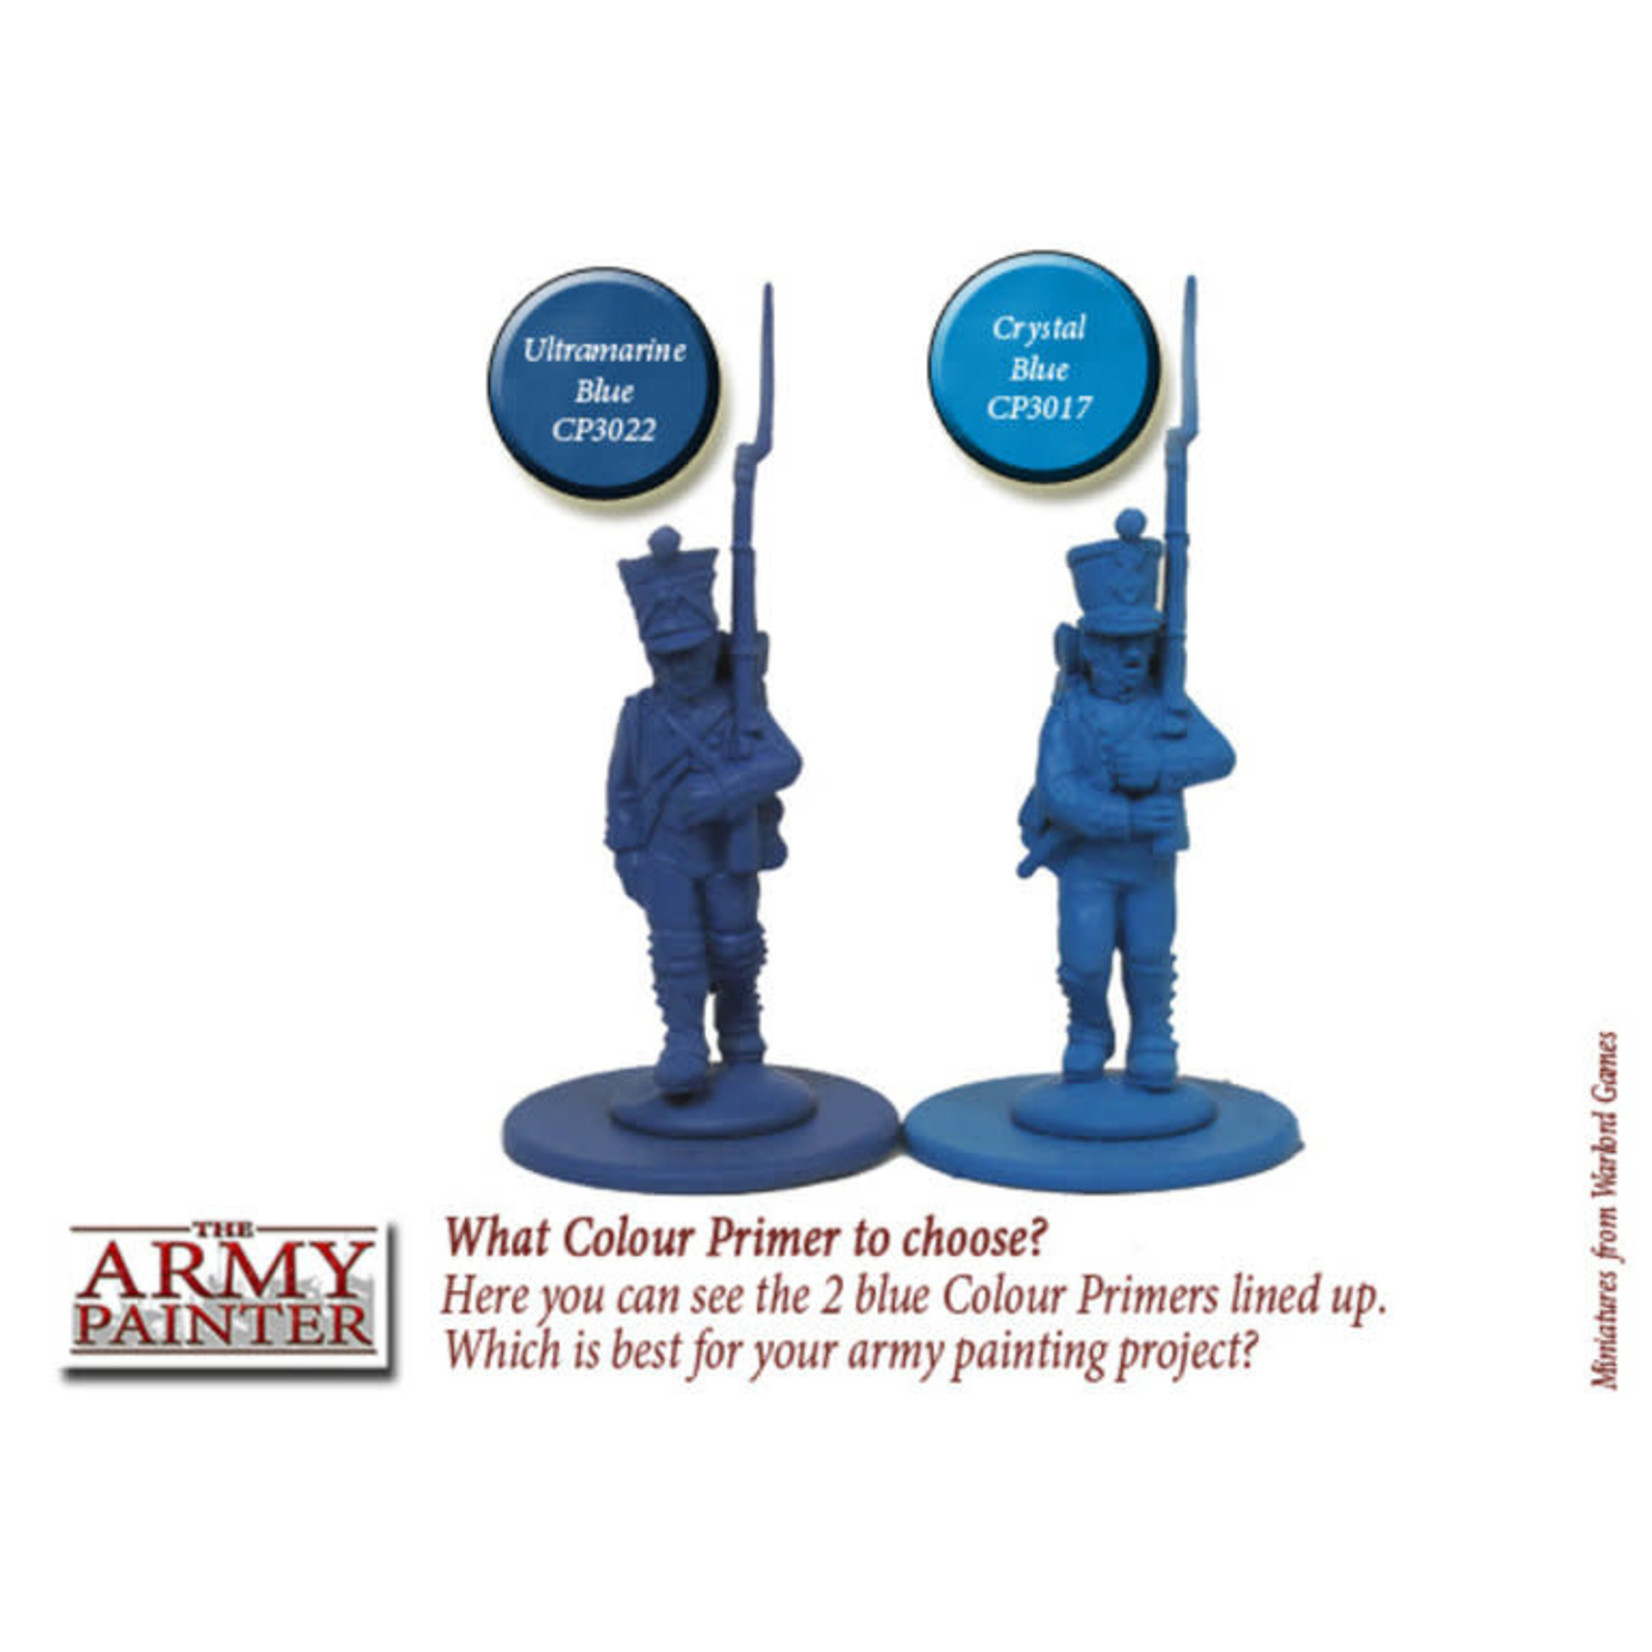 THE ARMY PAINTER Color Primer Ultramarine Blue